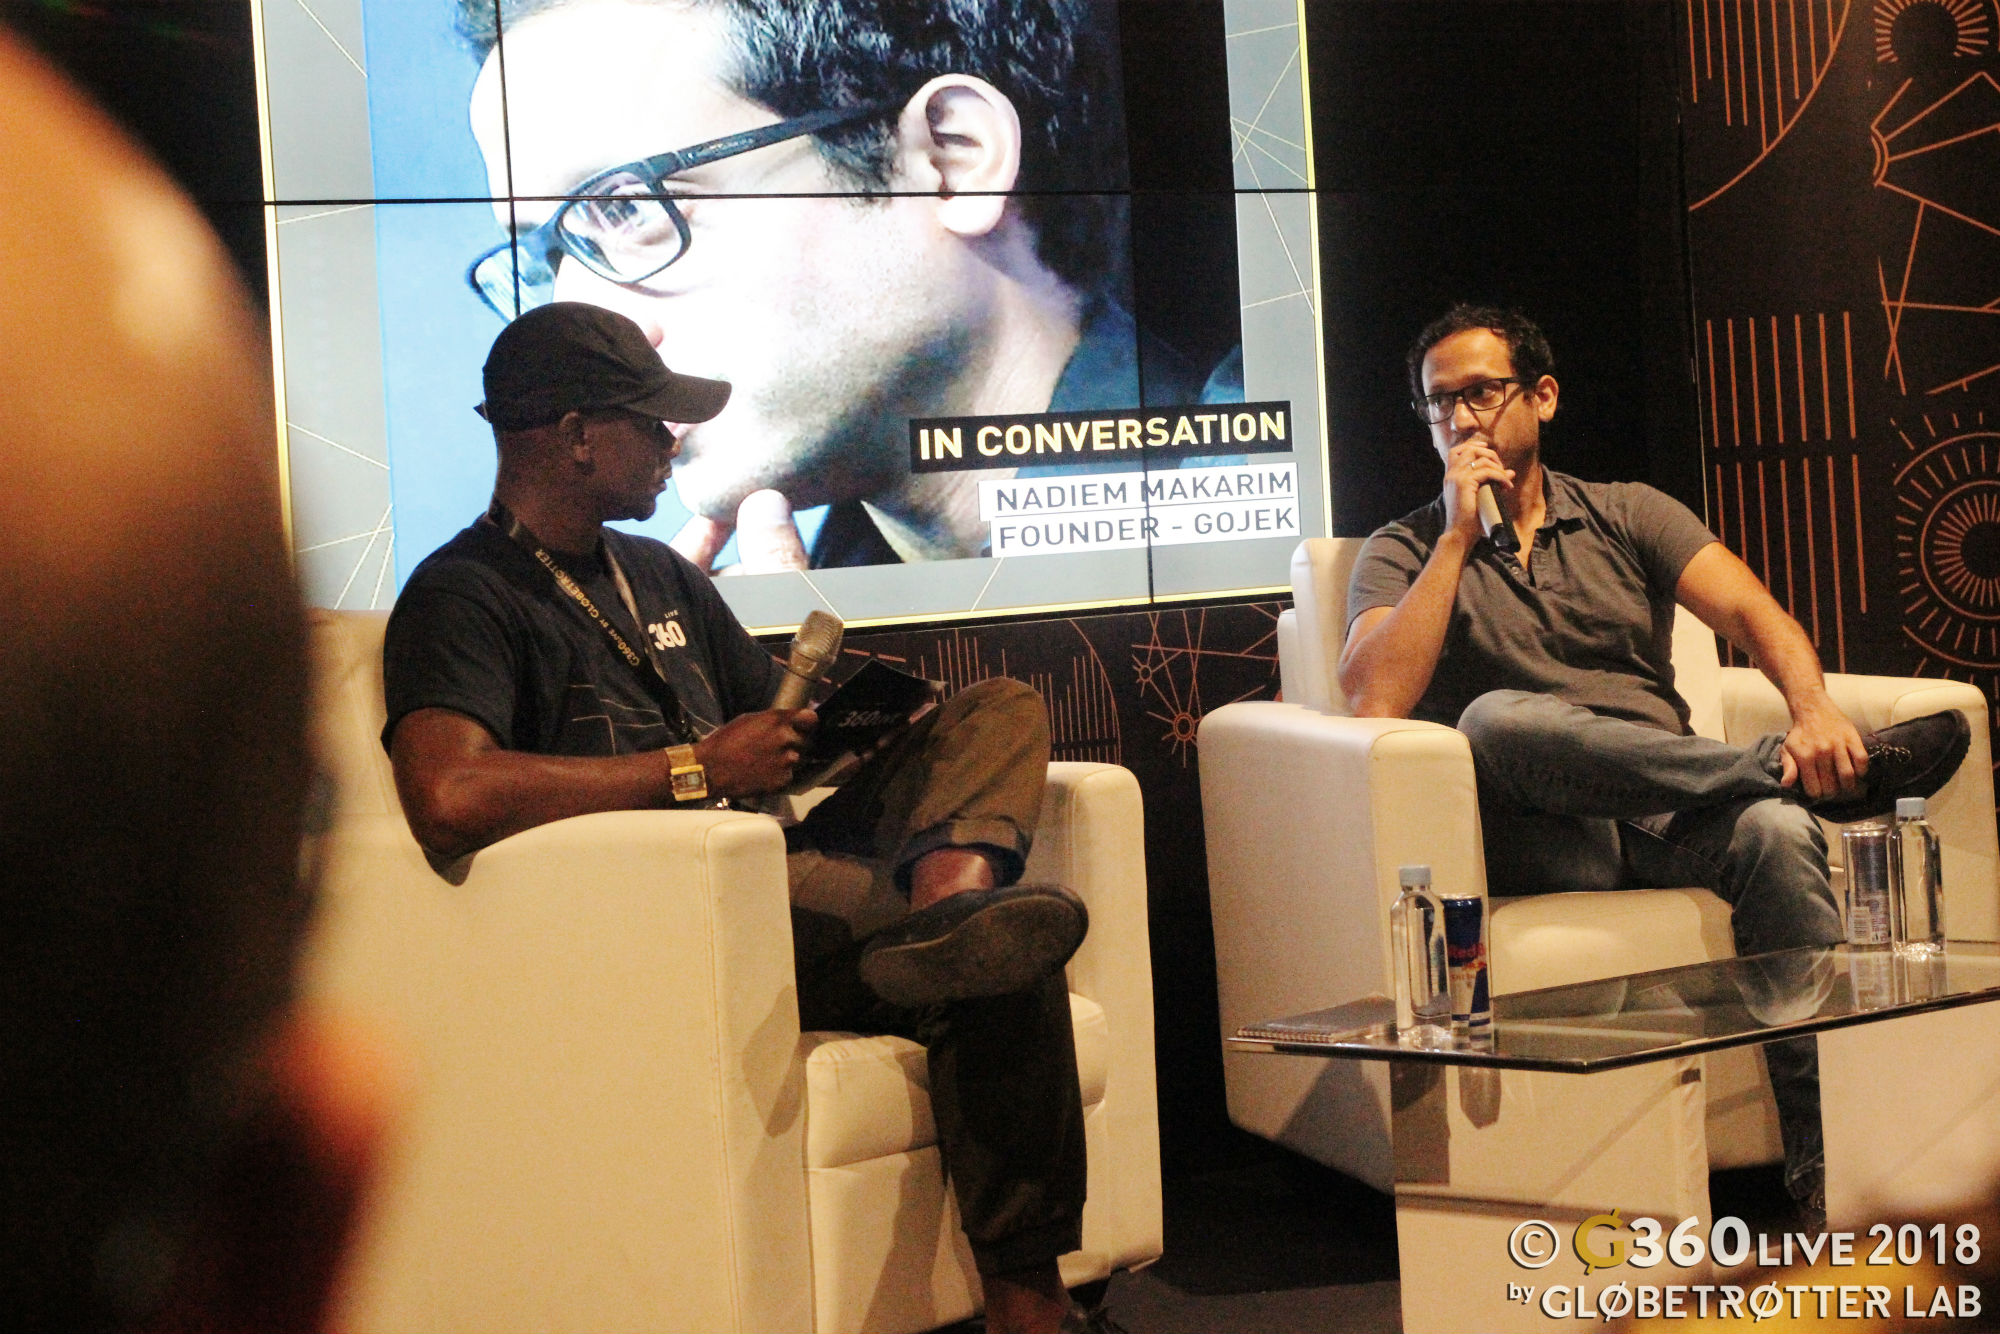 Kennedy Ashinze, Founder/Curator of Globetrotter Lab and G360 Live (Left) and Nadiem Makarim, CEO/Founder of Go-Jek Indonesia